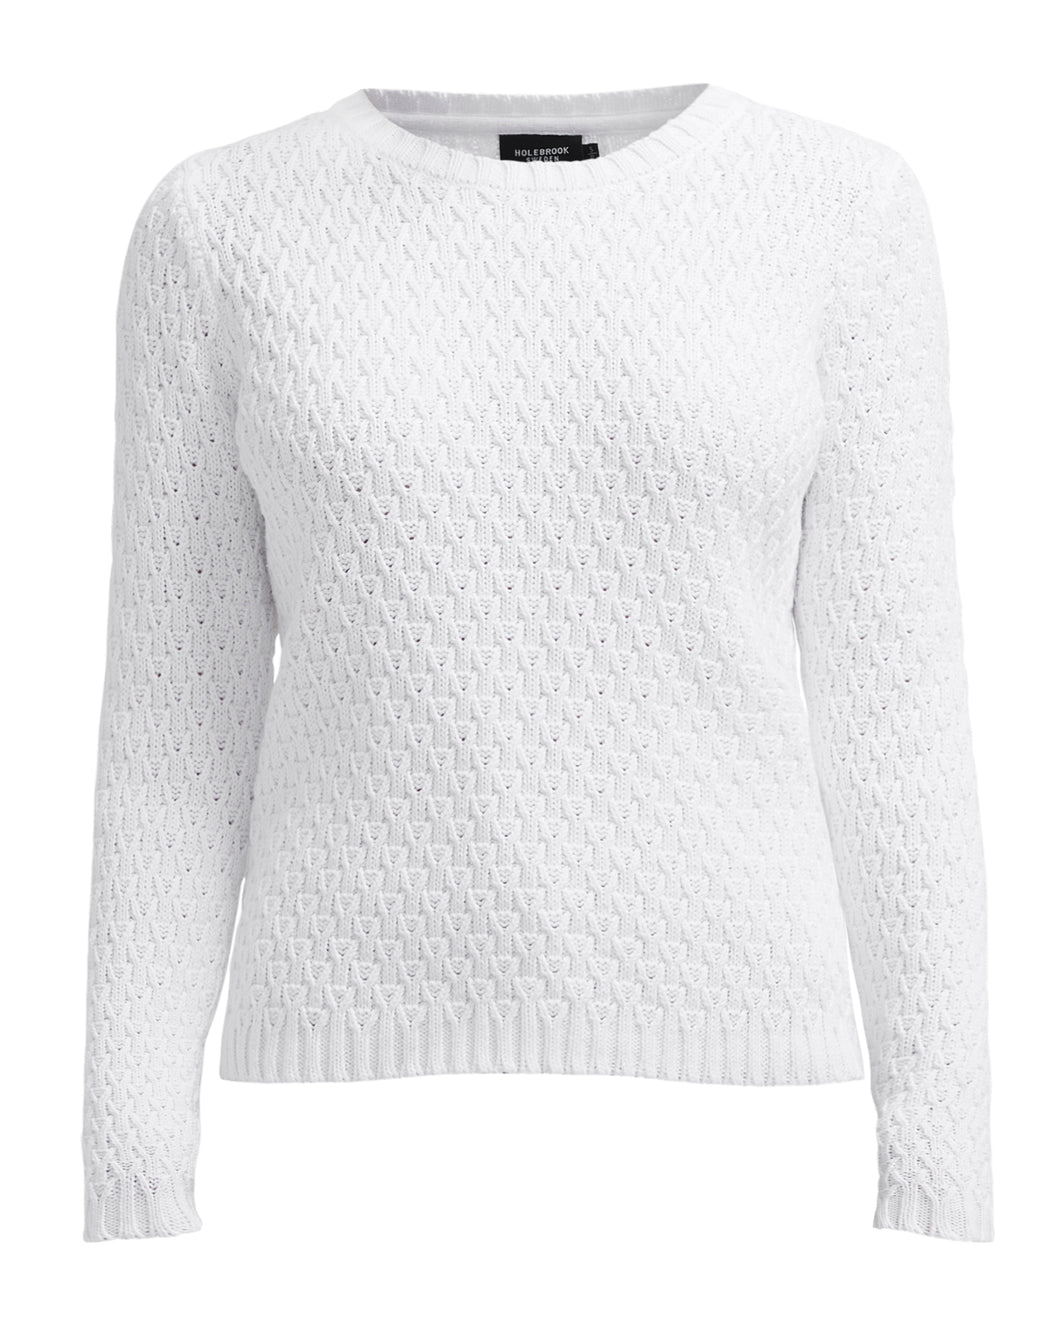 Holebrook Sweden Valentina Crew Neck Jumper (NEW)